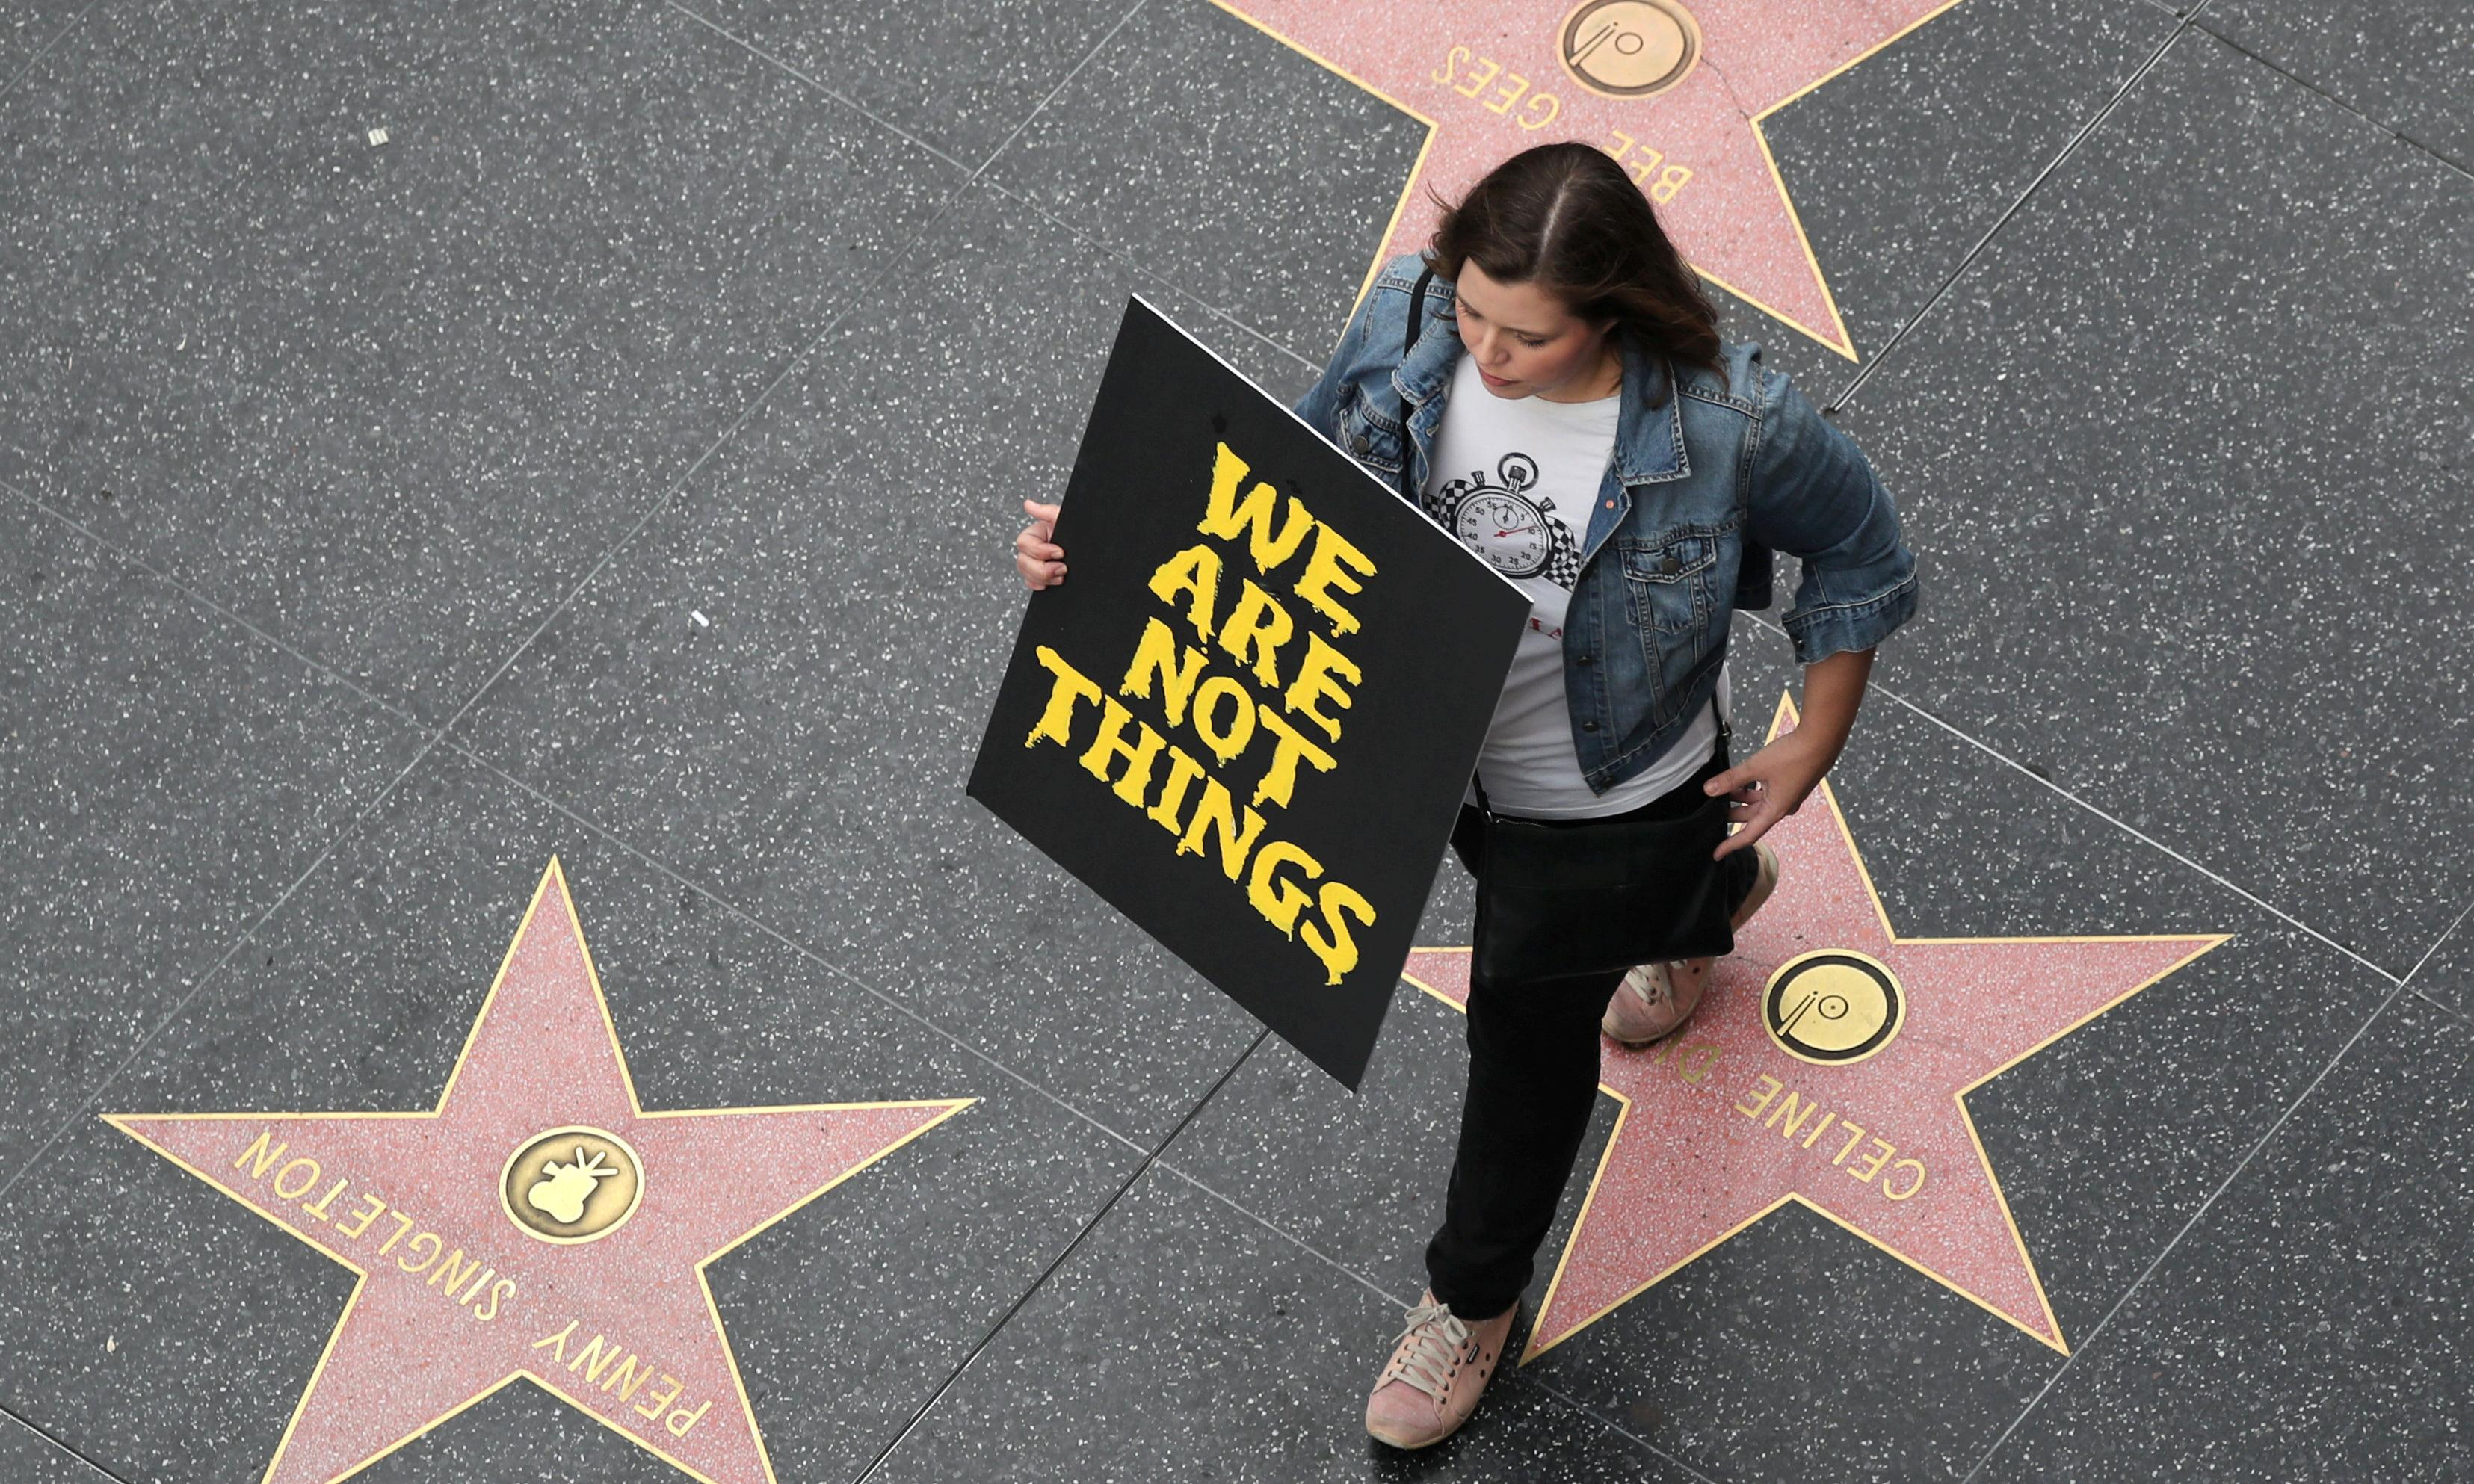 Hollywood Walk of Fame's star for a car takes product placement to new level